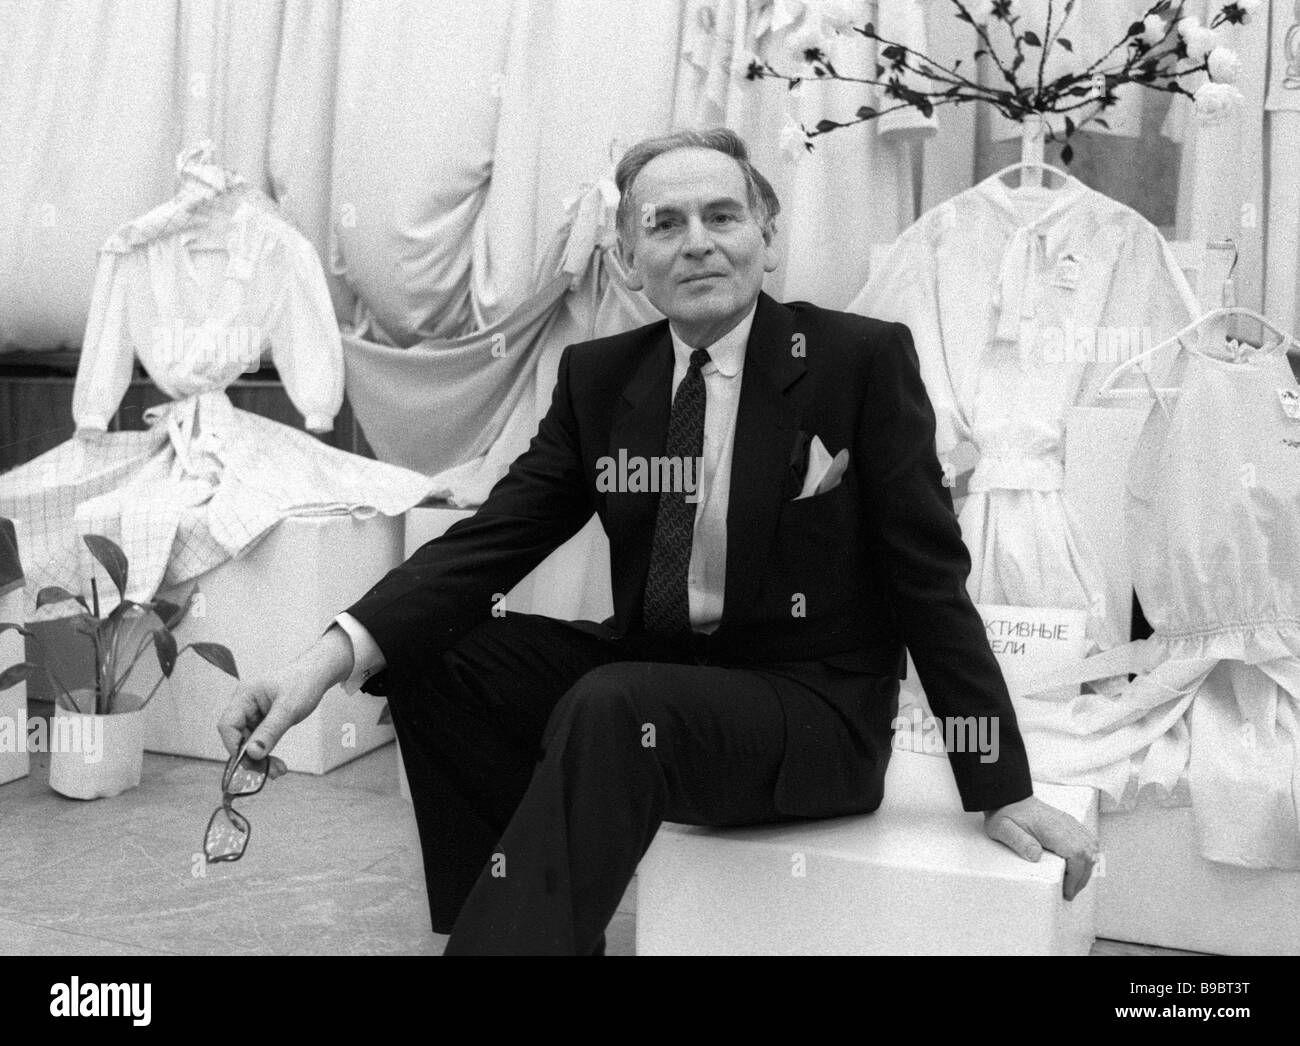 Pierre Cardin renowned fashion designer - Stock Image